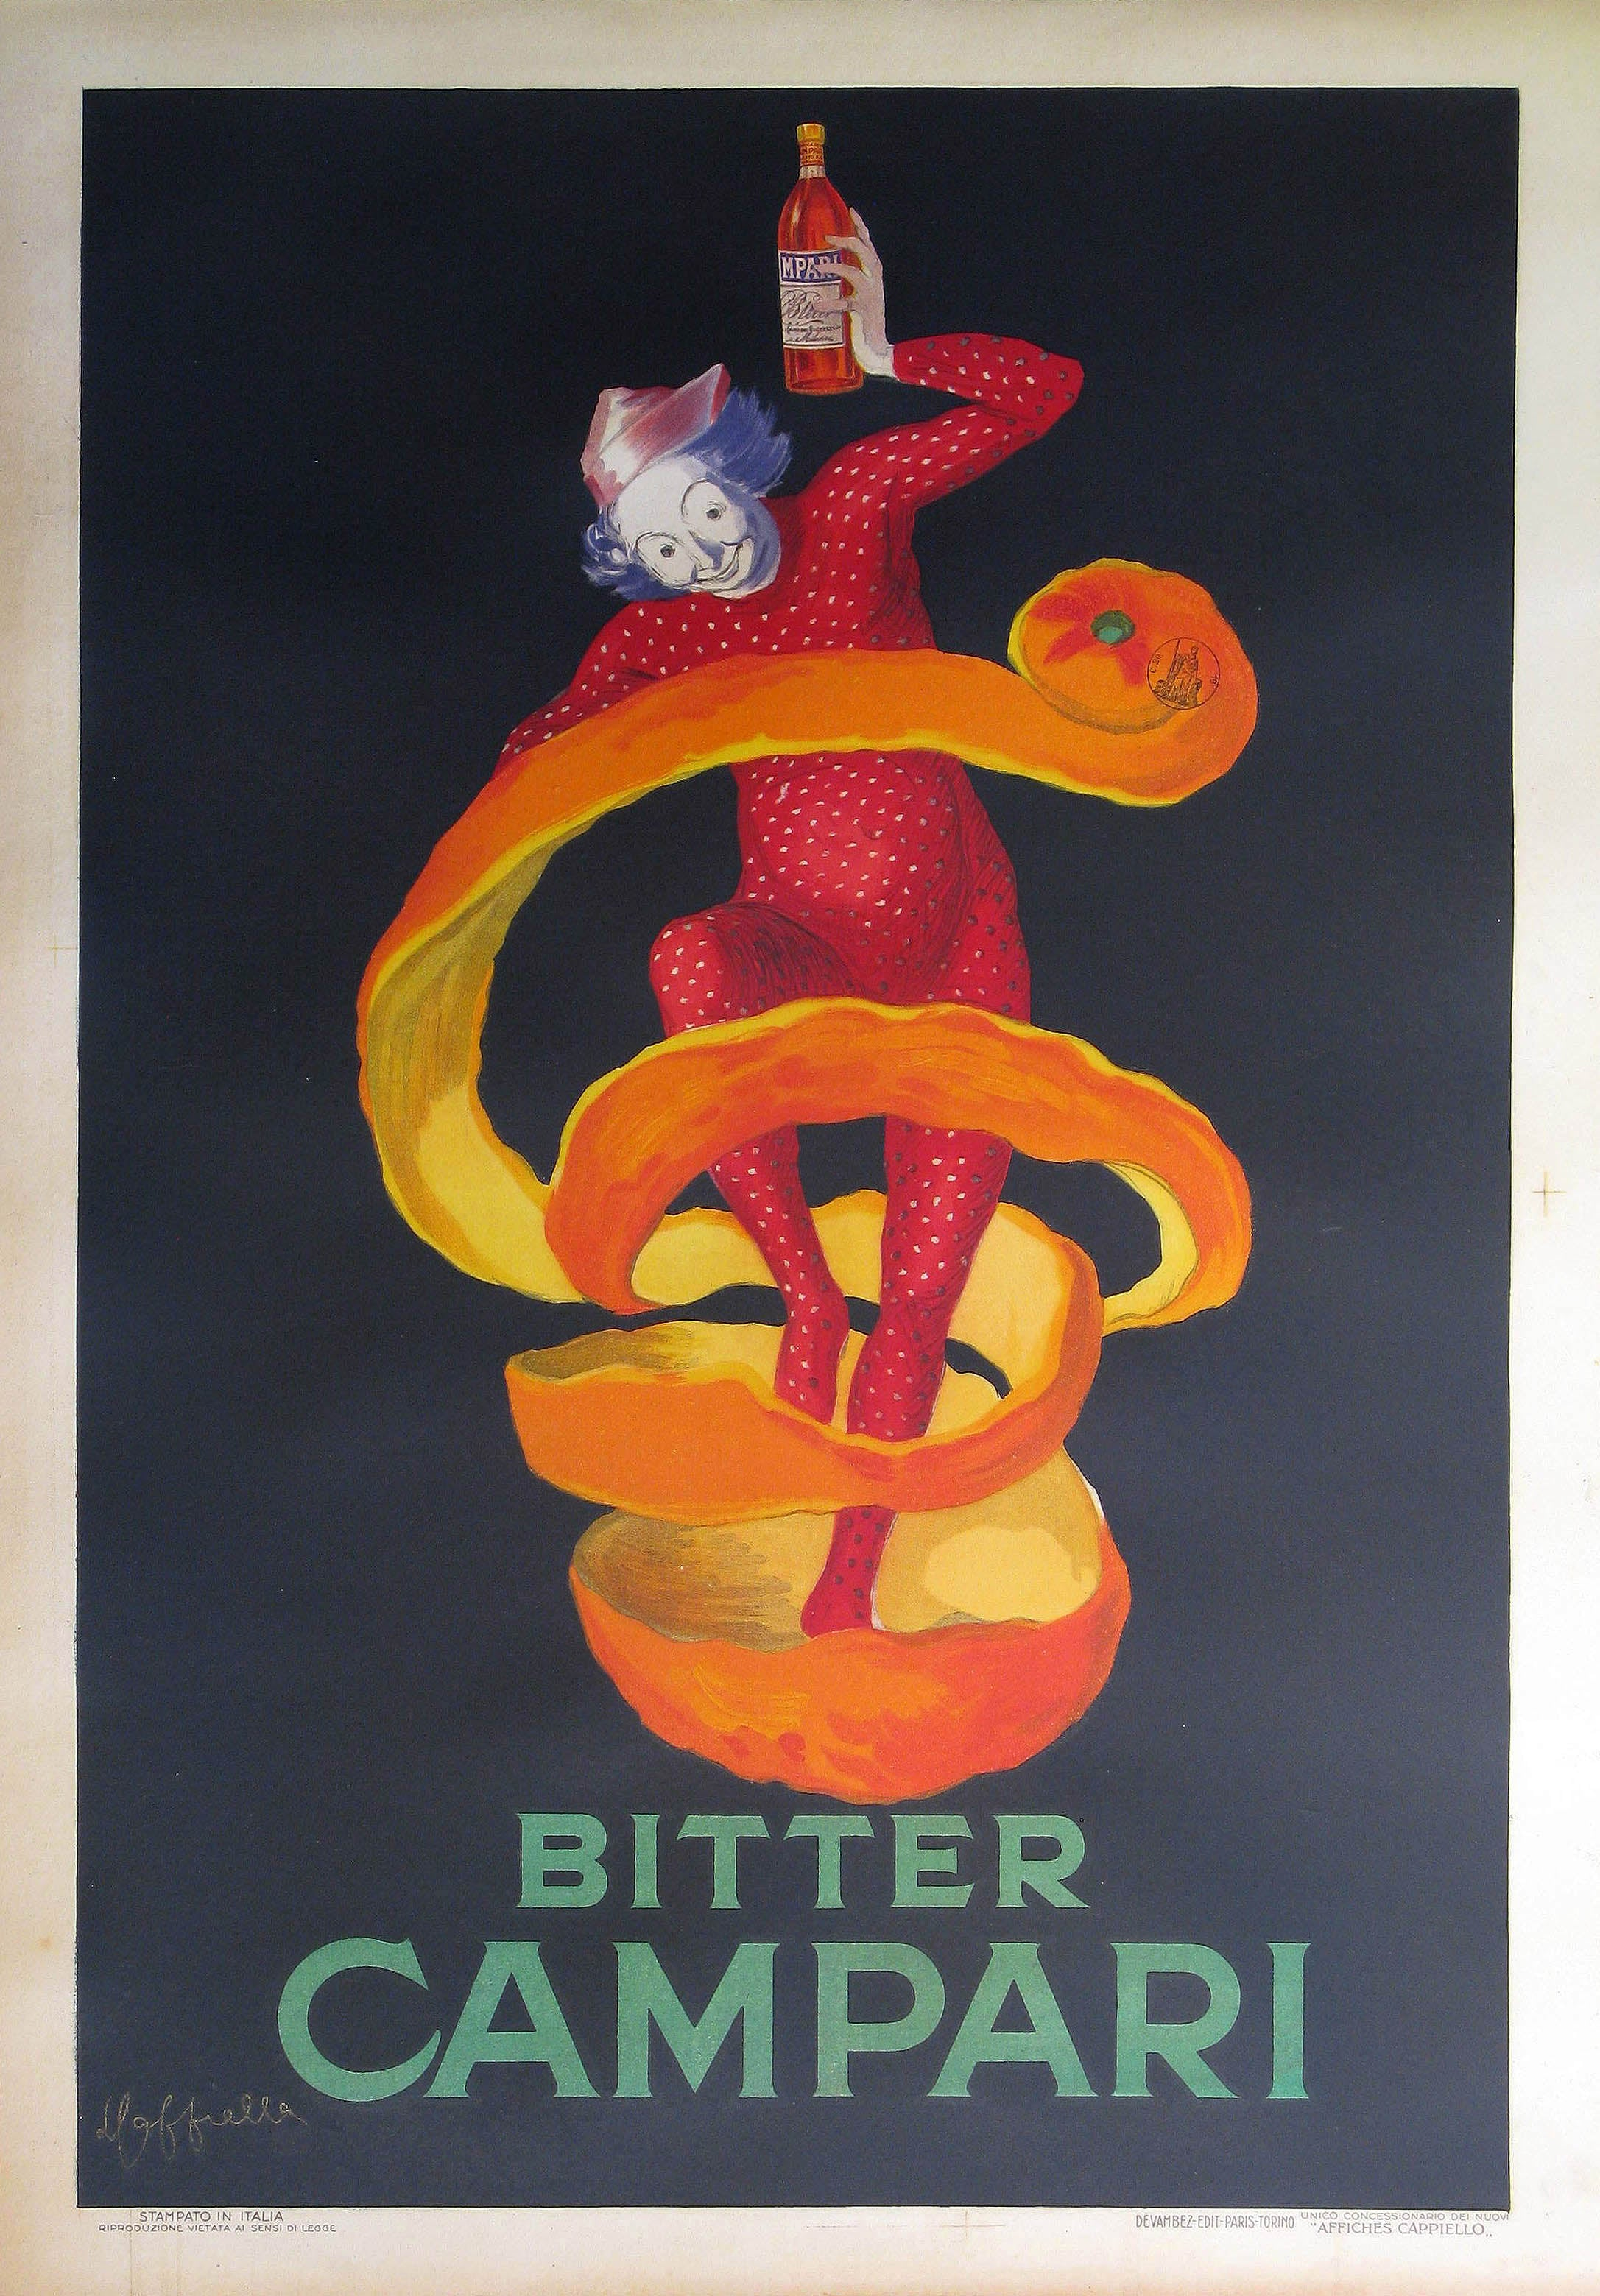 bitter campari poster by leonetto cappiello